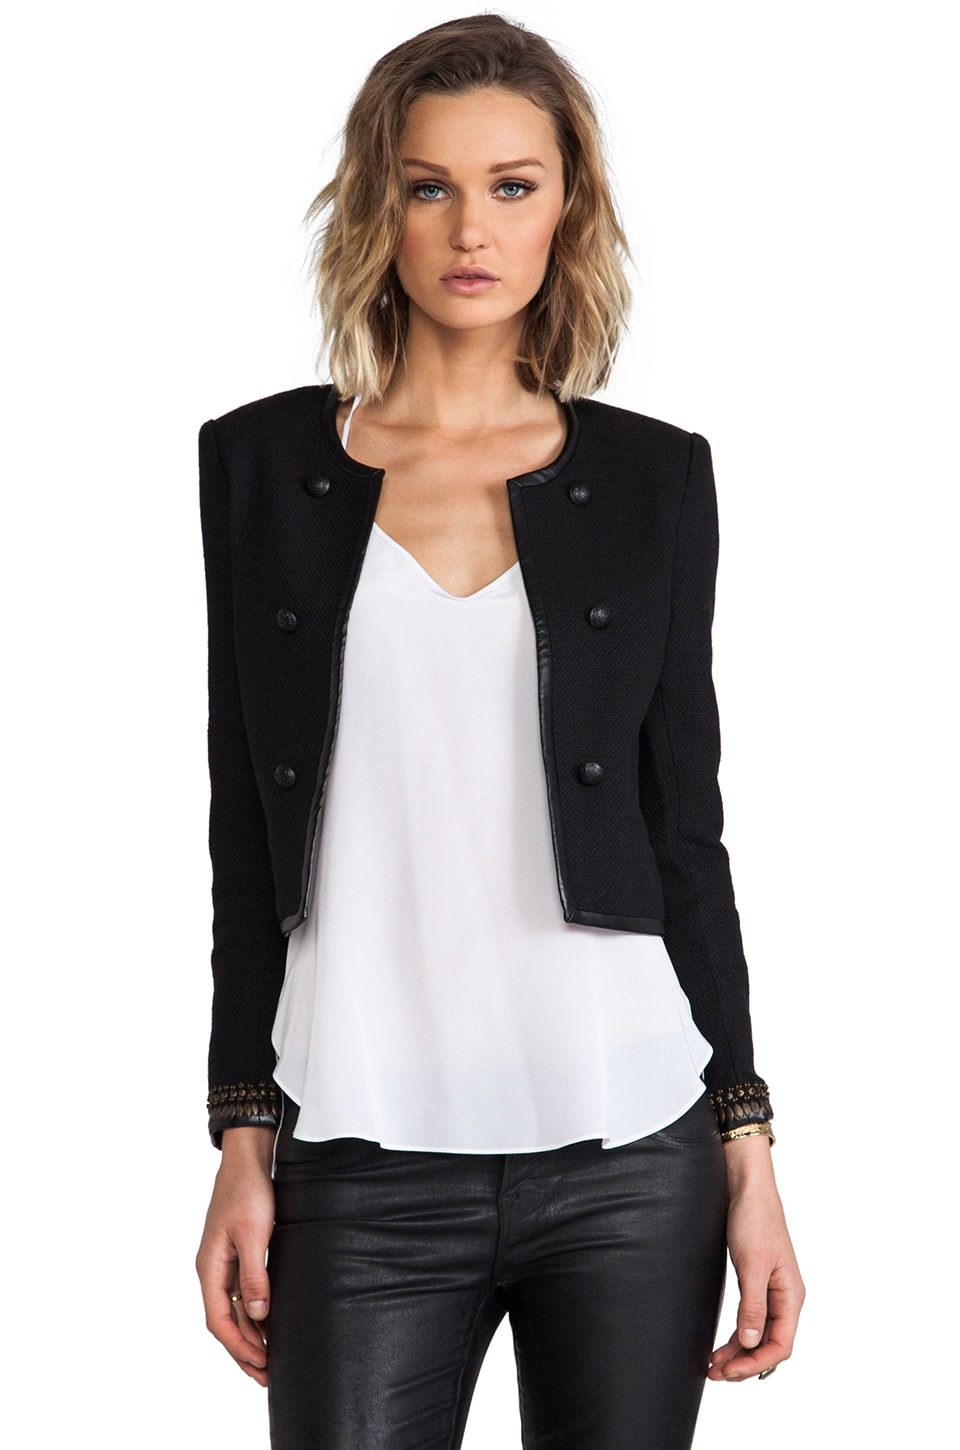 Joie Basket Weave Damaris Jacket in Caviar